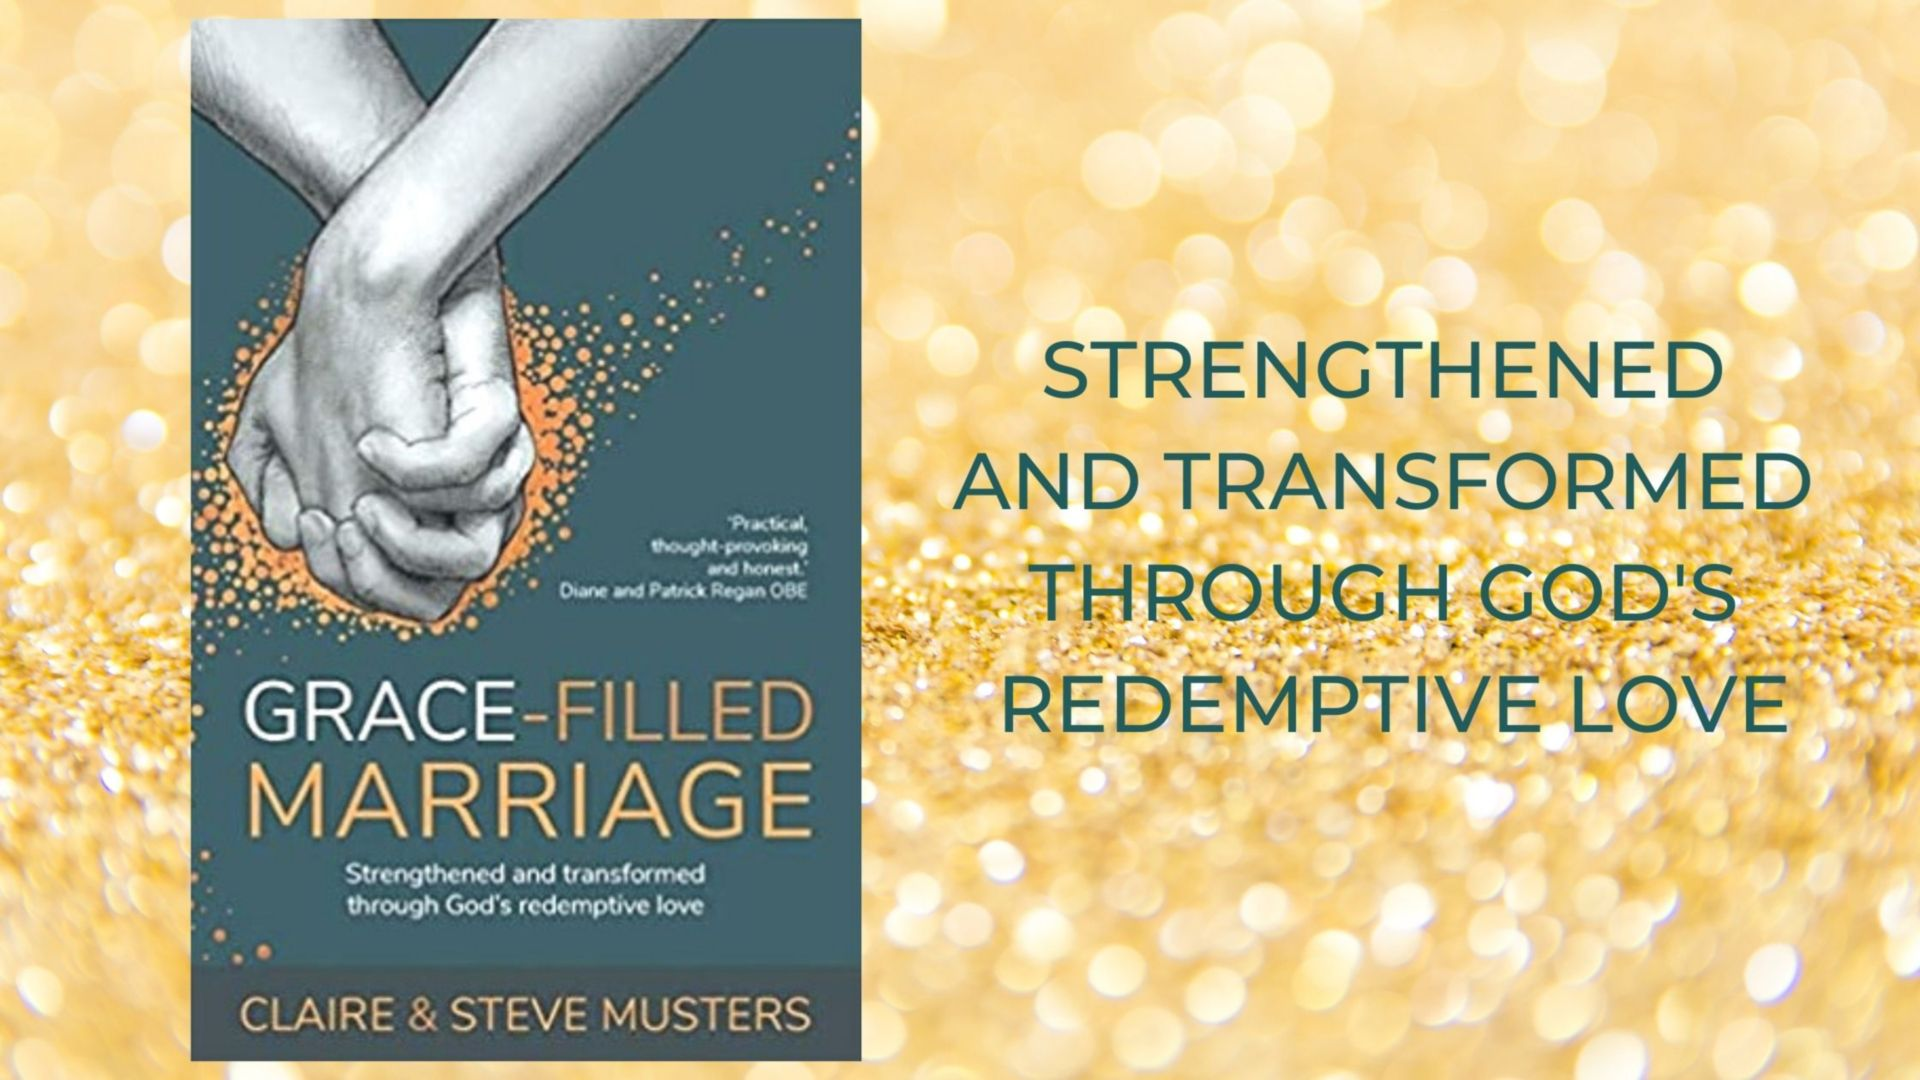 Grace-Filled Marriage, a New Book from Authentic Media